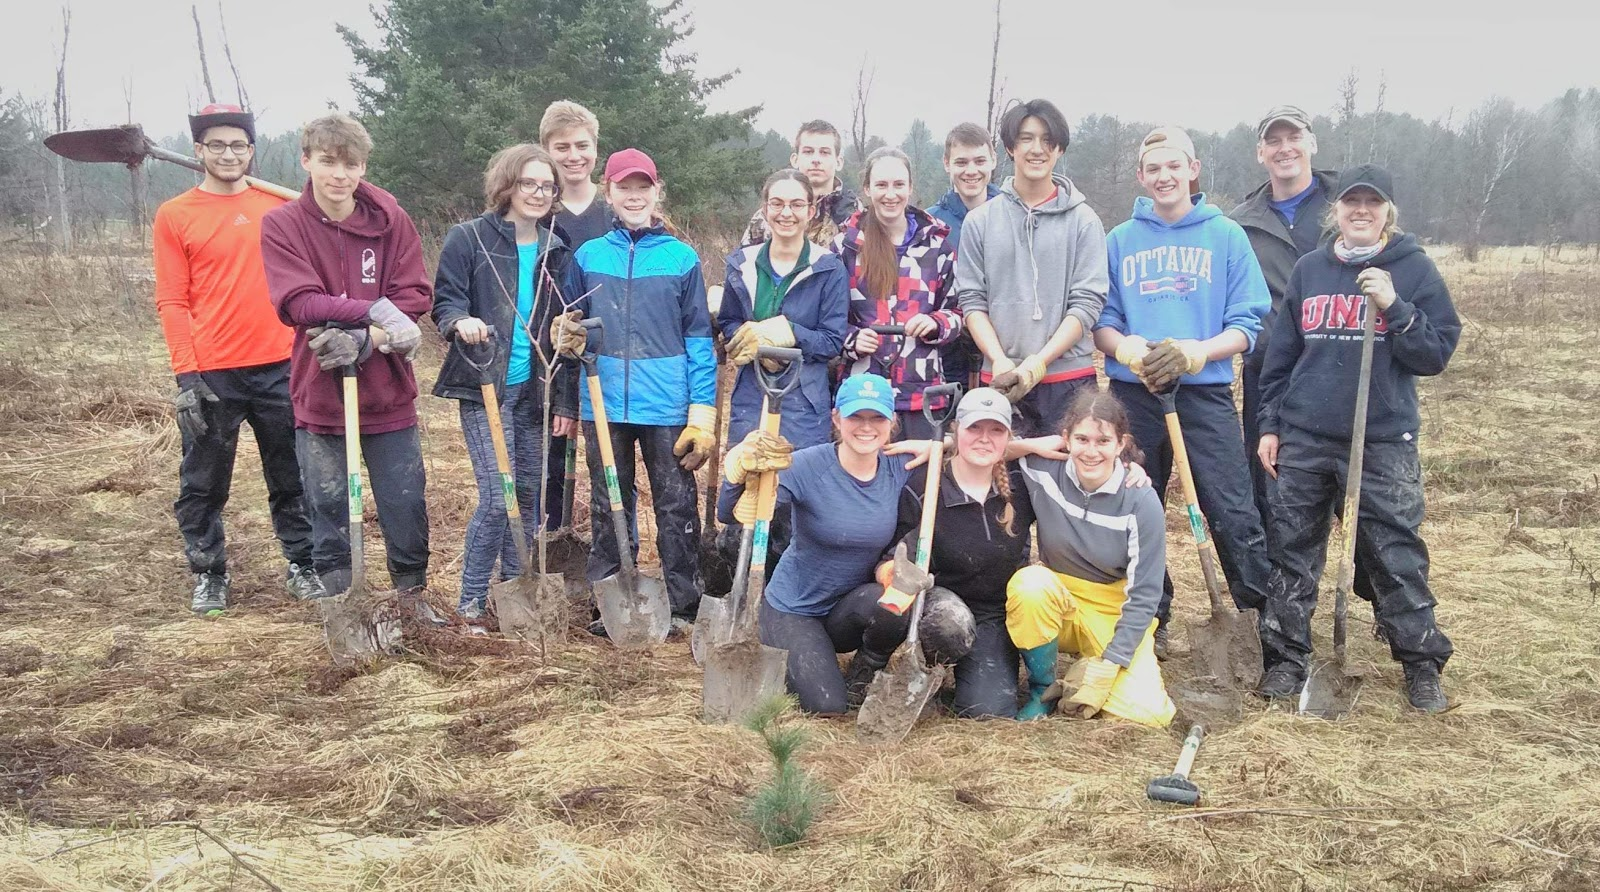 A group of students holding shovels out in nature.